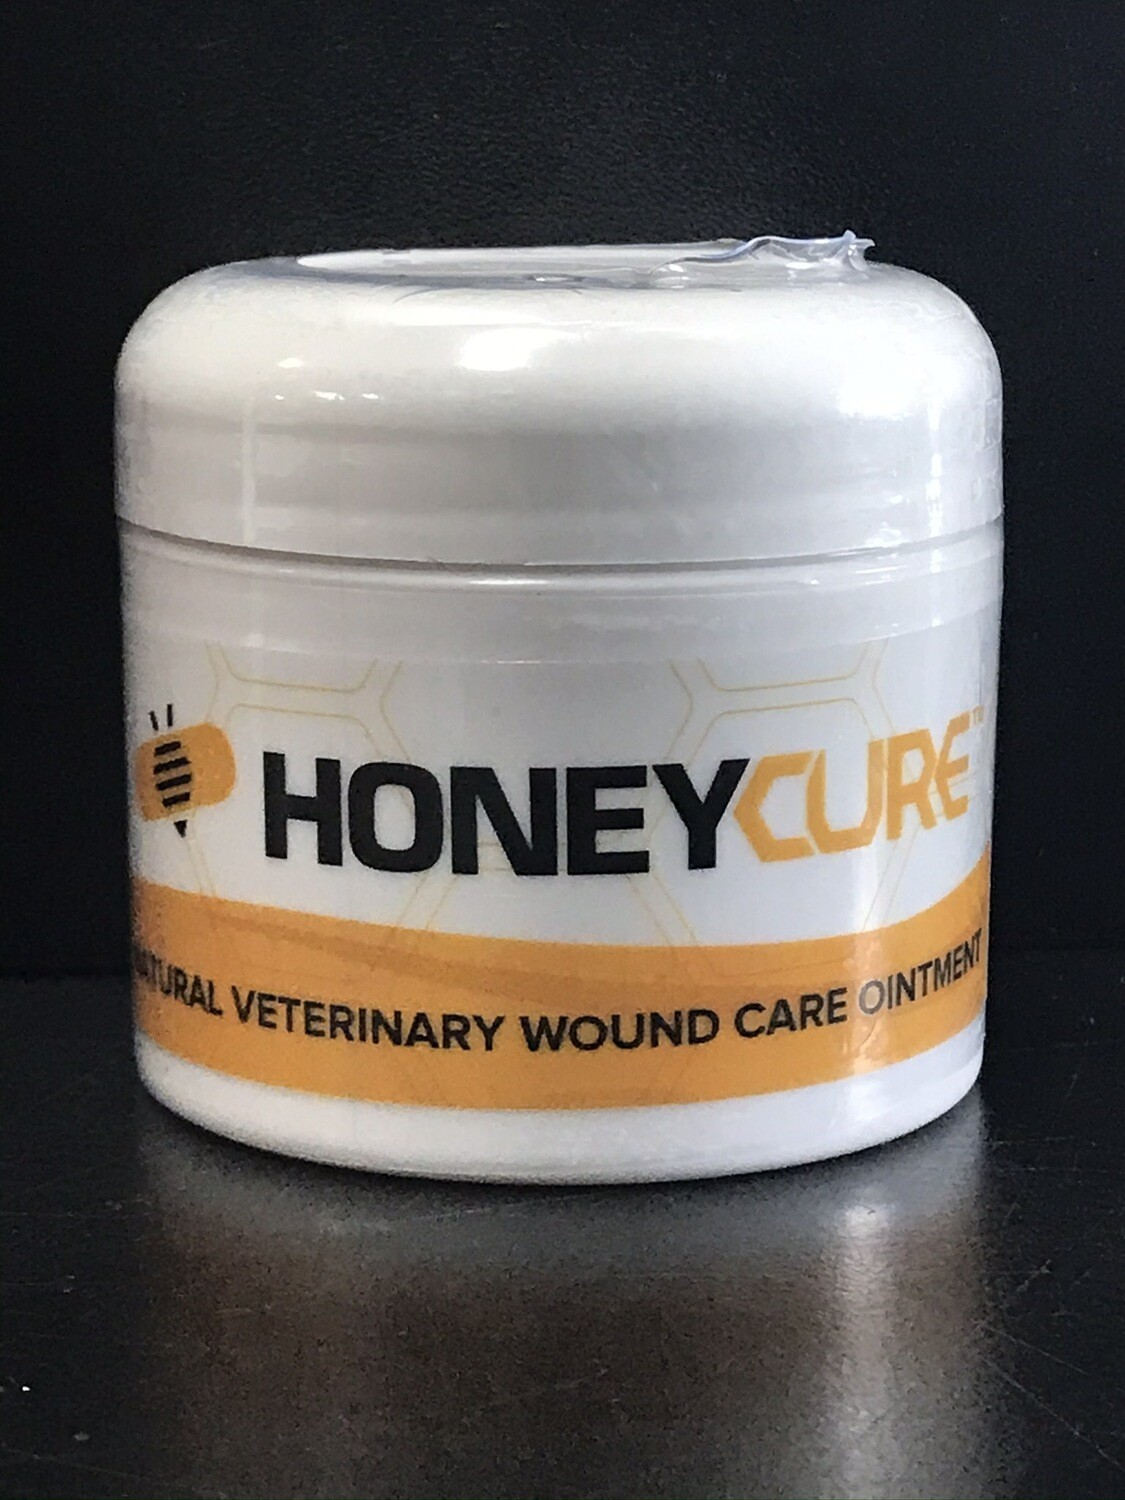 HONEY CURE JAR 2oz